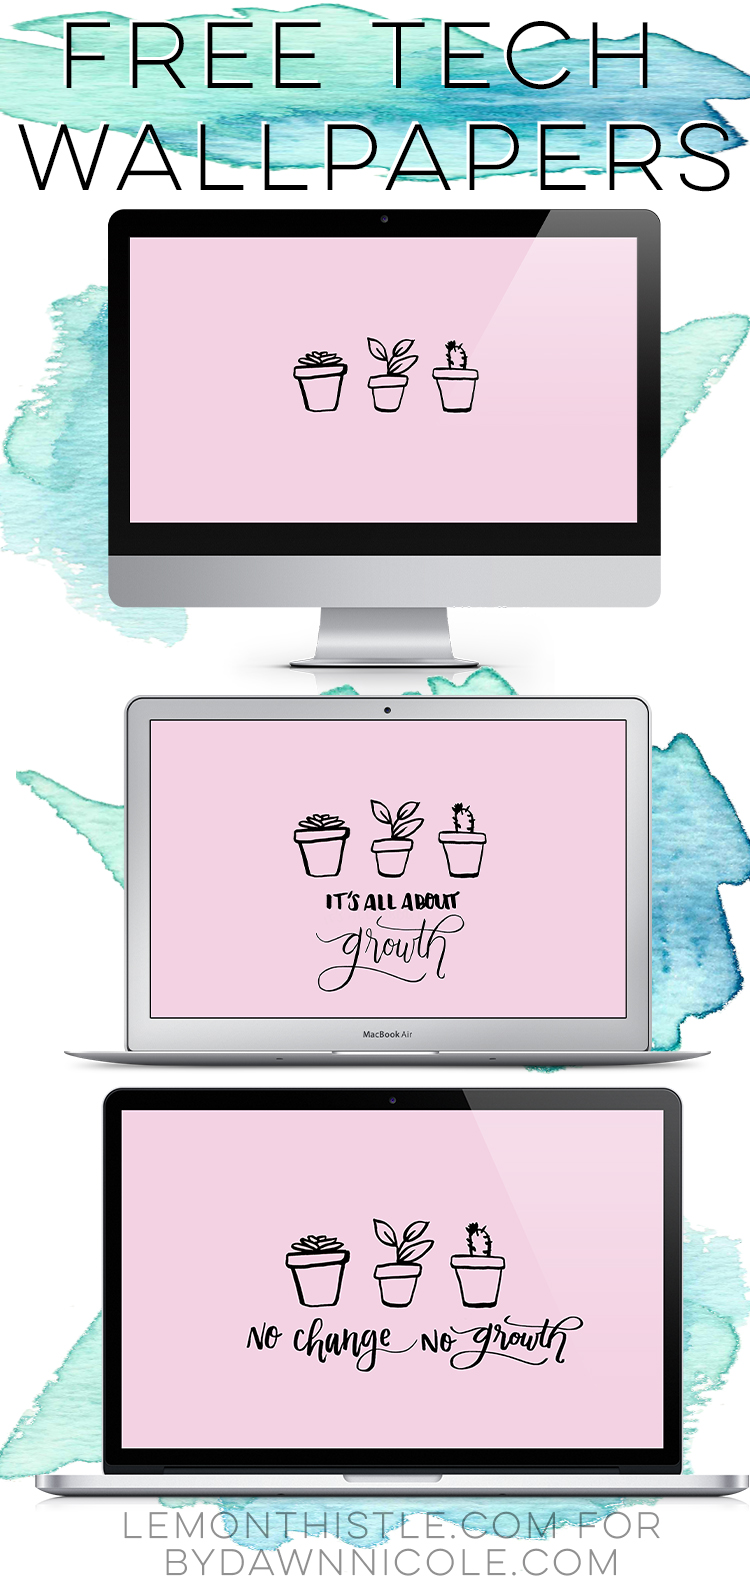 Such sweet tech wallpapers! And you can grab the plant pots as free elements- love that!